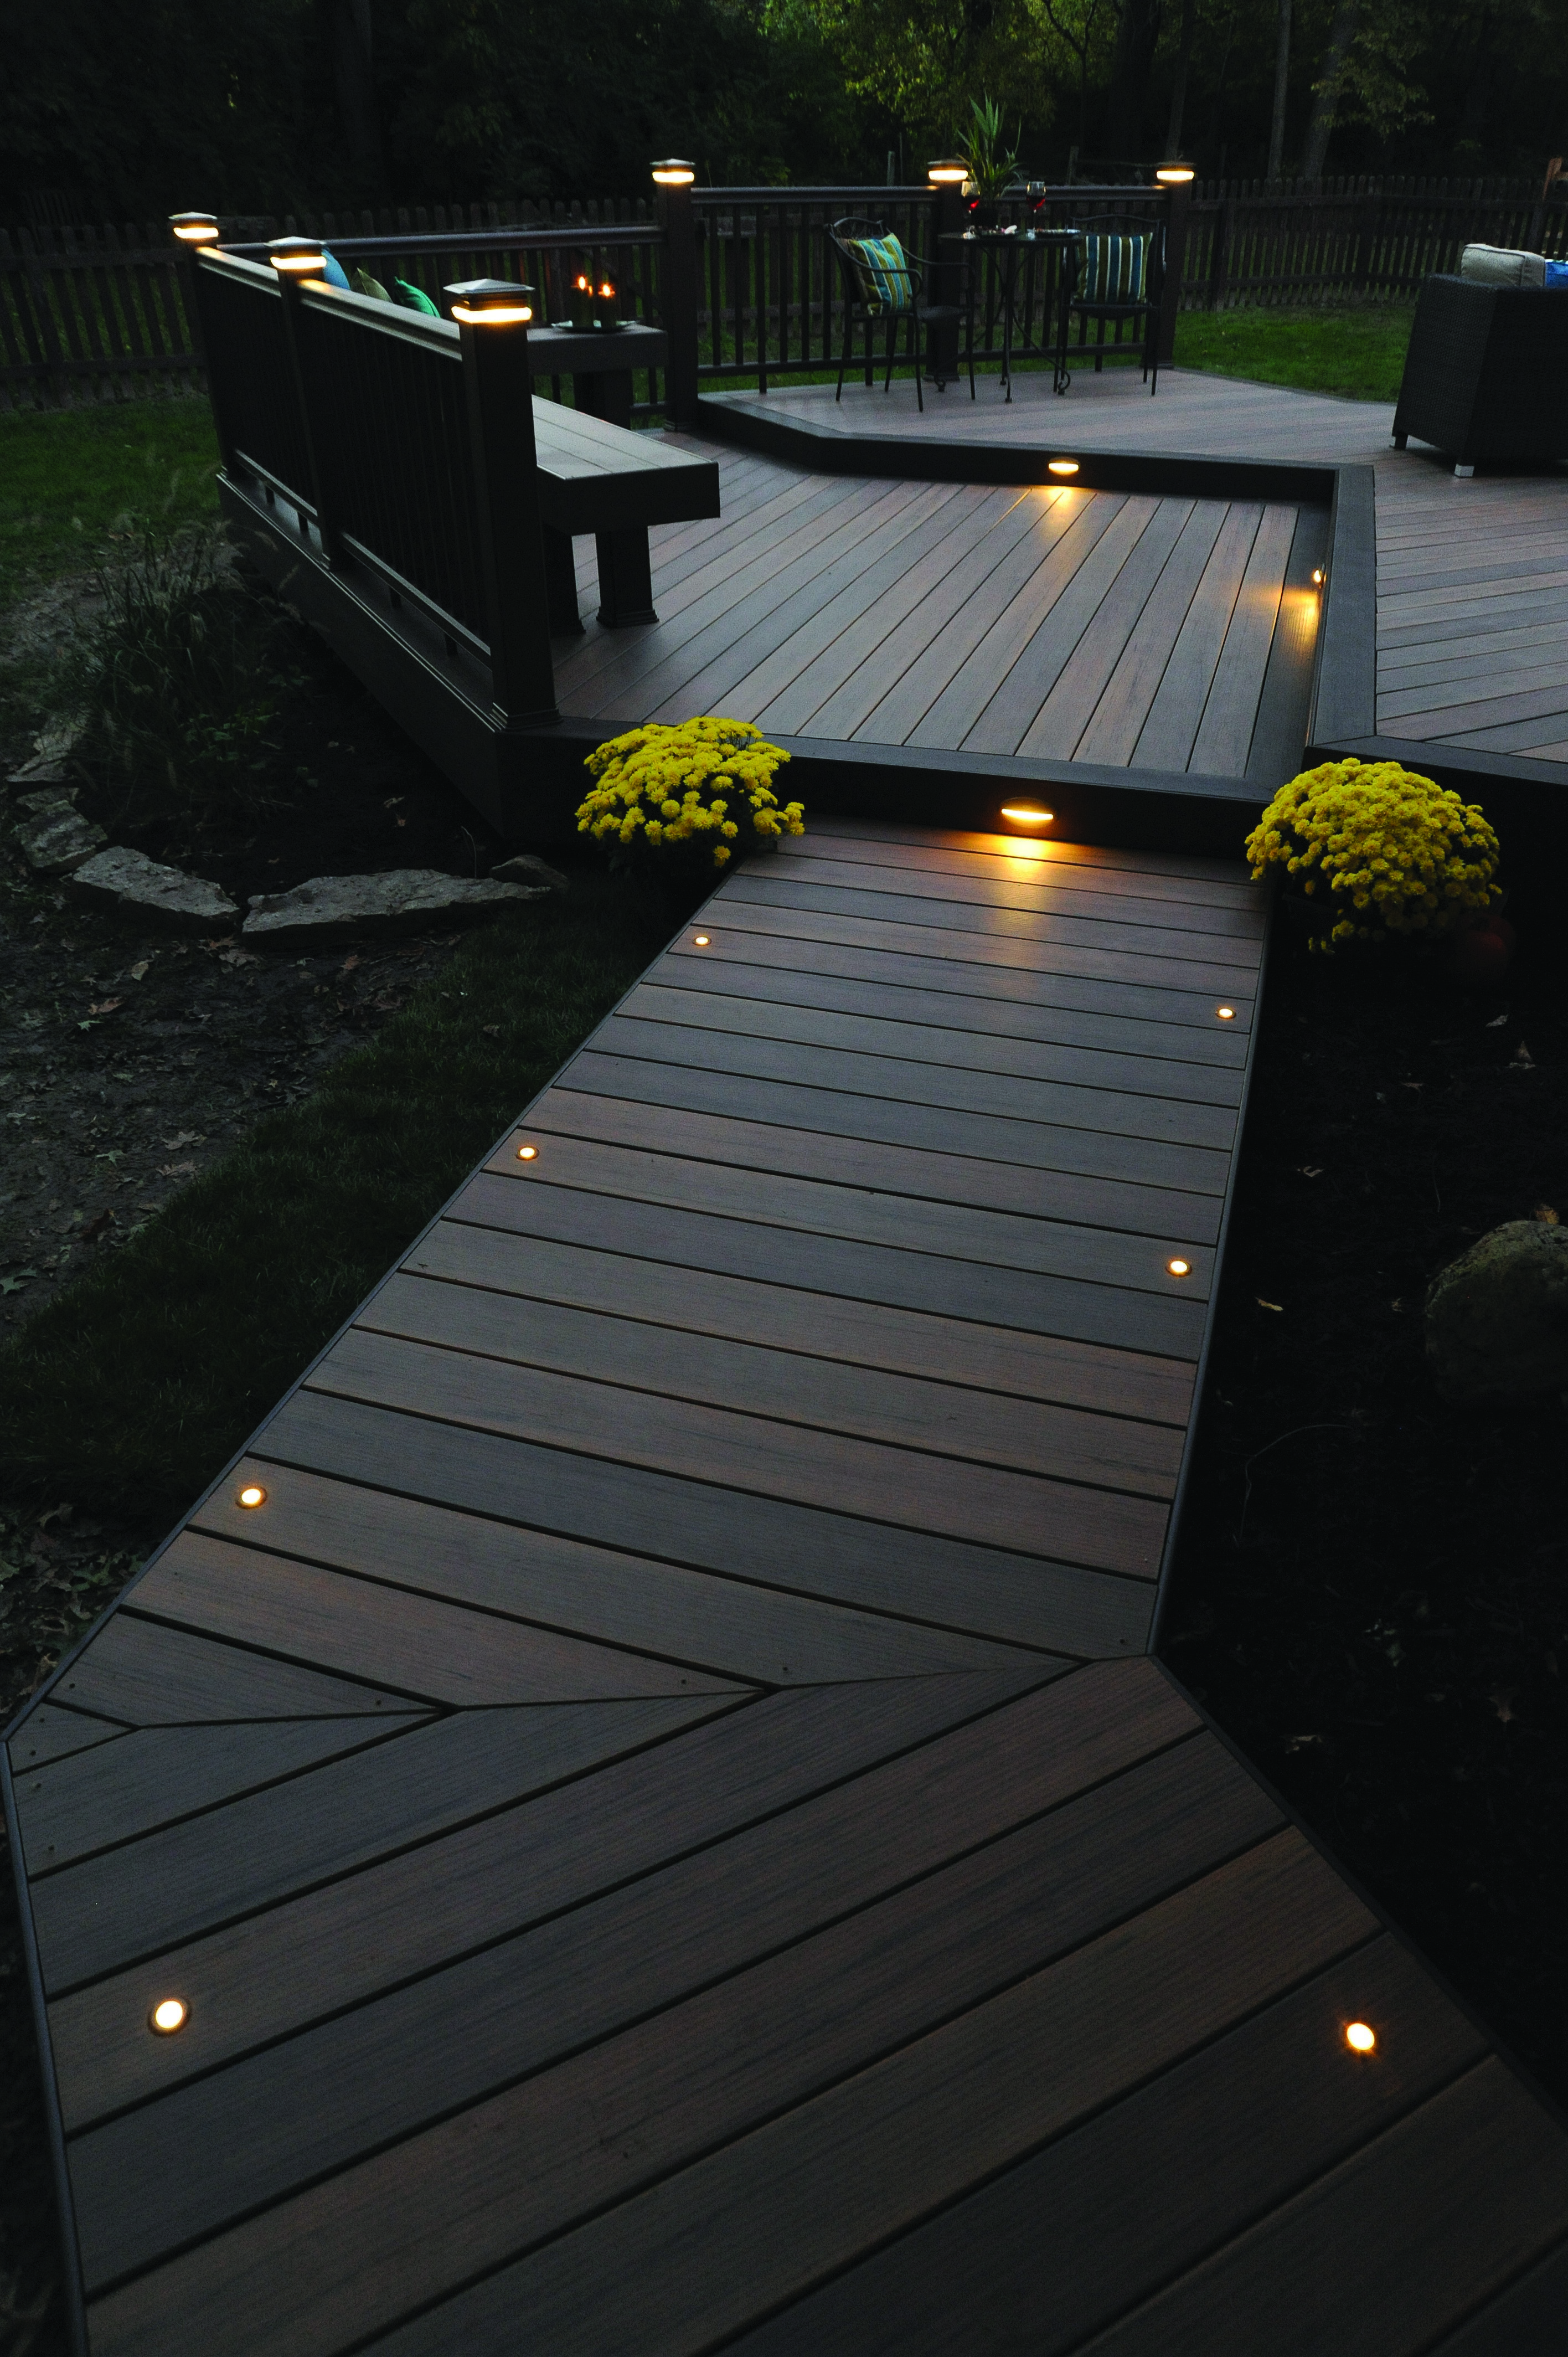 Light The Night For You And Your Guests With TimberTech Decking And Lighting.  This Deck Is From Our Legacy Collection In Tigerwood With Mocha Accents.